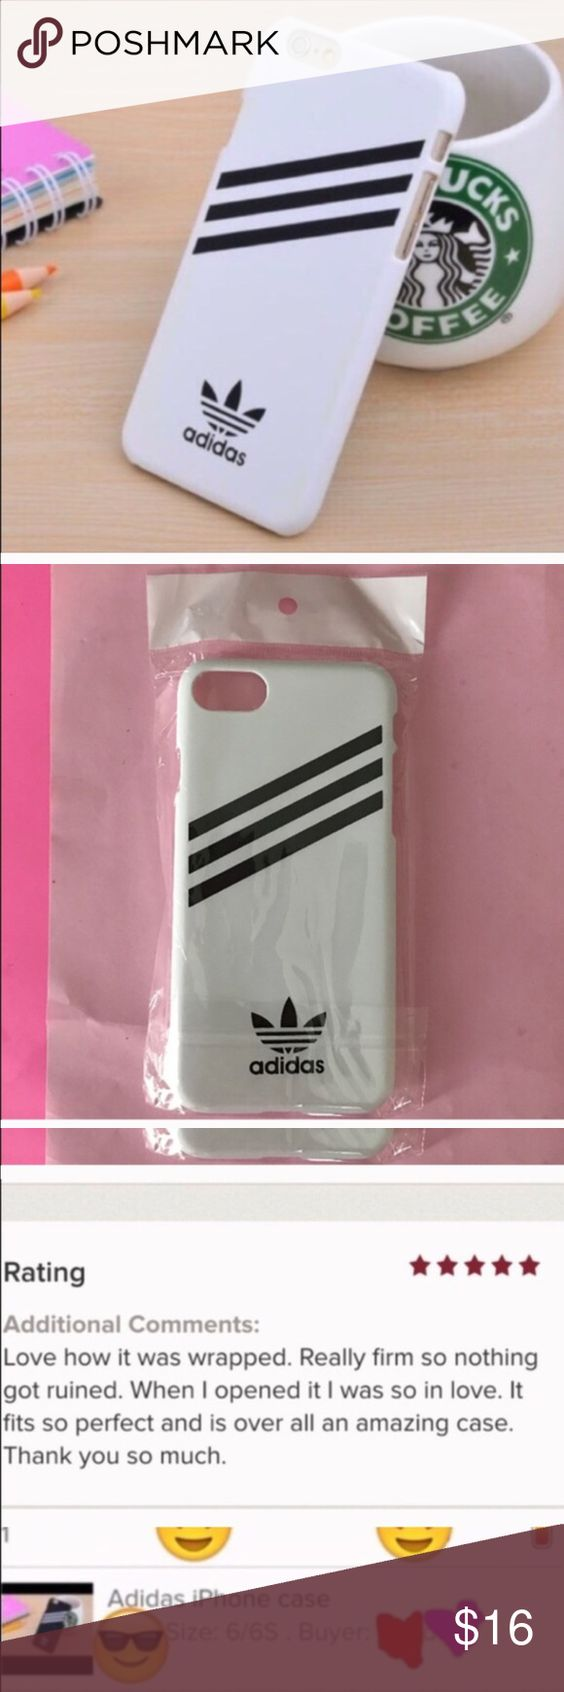 White adidas 7 📱case Cute white adidas hard case for iPhone 📱7 ,,,,Brand new.            2 available Adidas Accessories Phone Cases